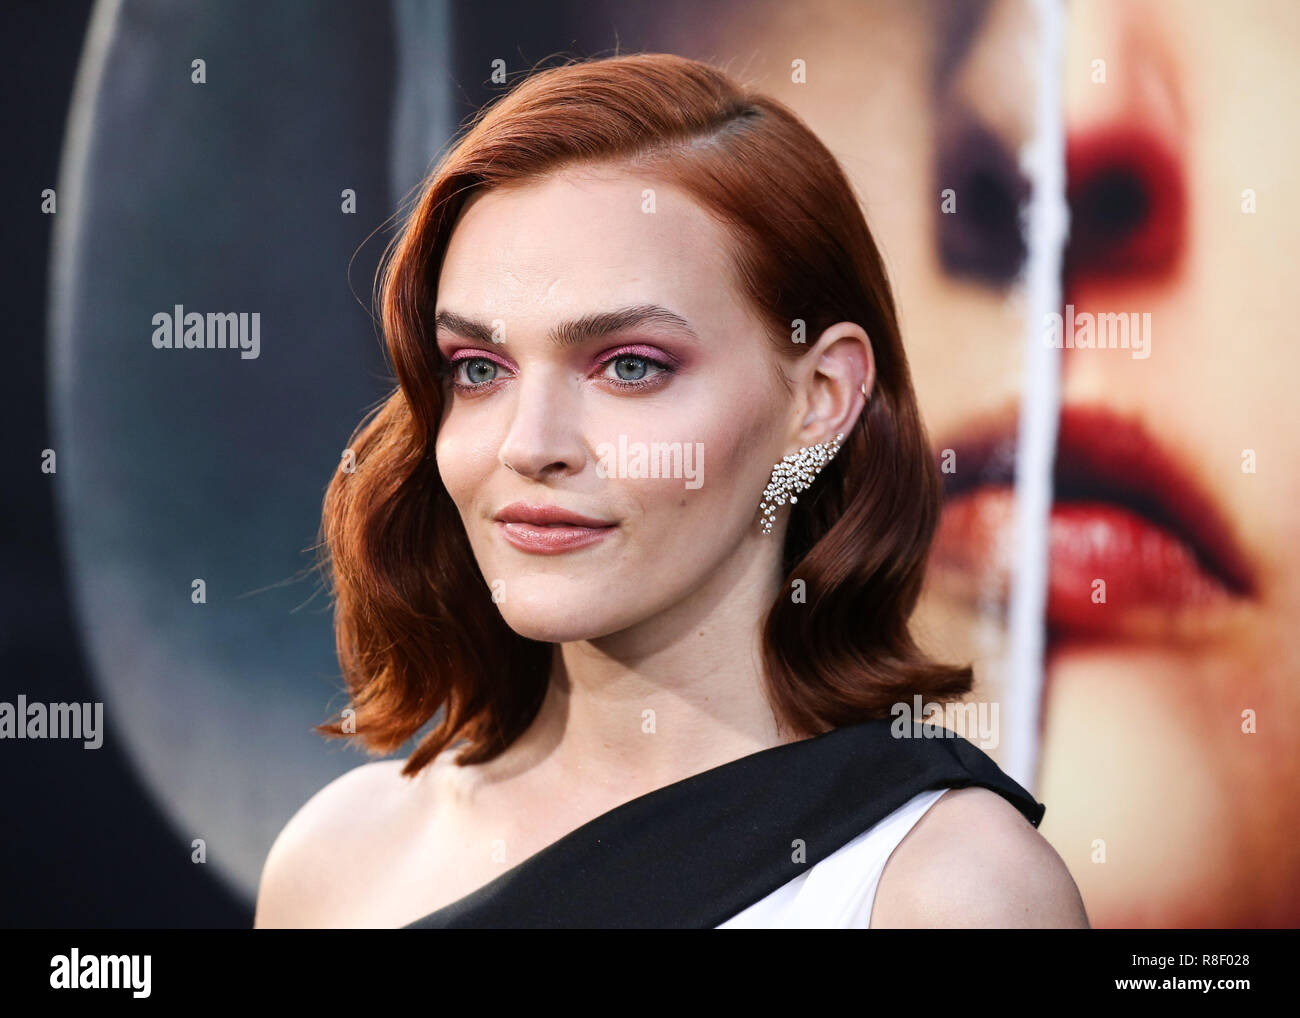 Selfie Madeline Brewer naked (44 photo), Tits, Paparazzi, Selfie, lingerie 2017